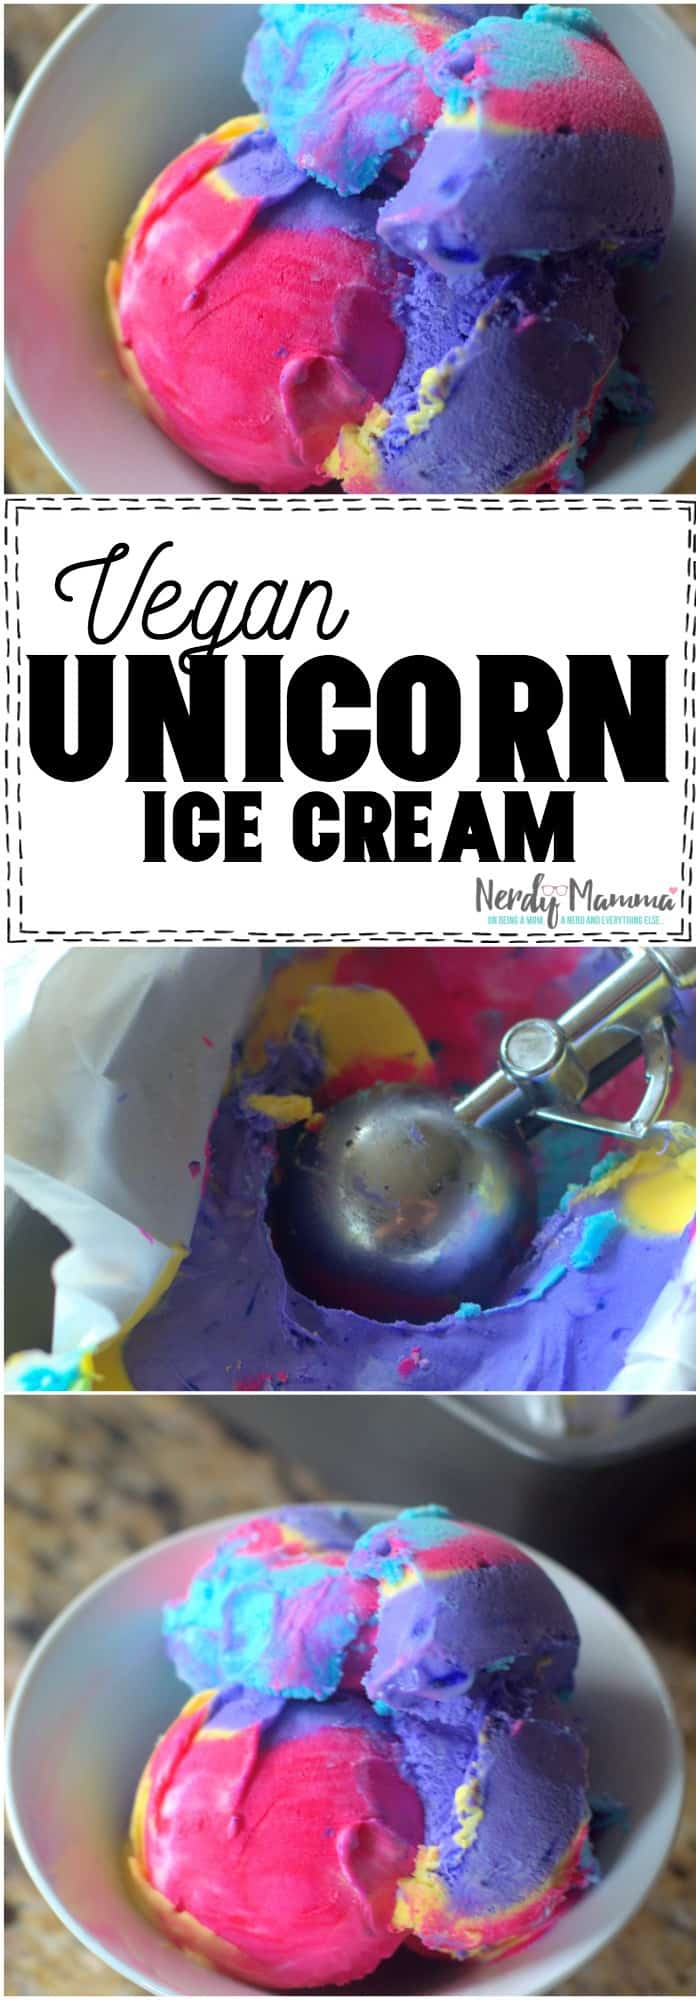 This Vegan Unicorn Ice Cream is so simple! Only 3 Ingredients and SO CUTE! #vegan #unicorn #recipe #3ingredient #simplefood #food #tasty #icecream #nicecream